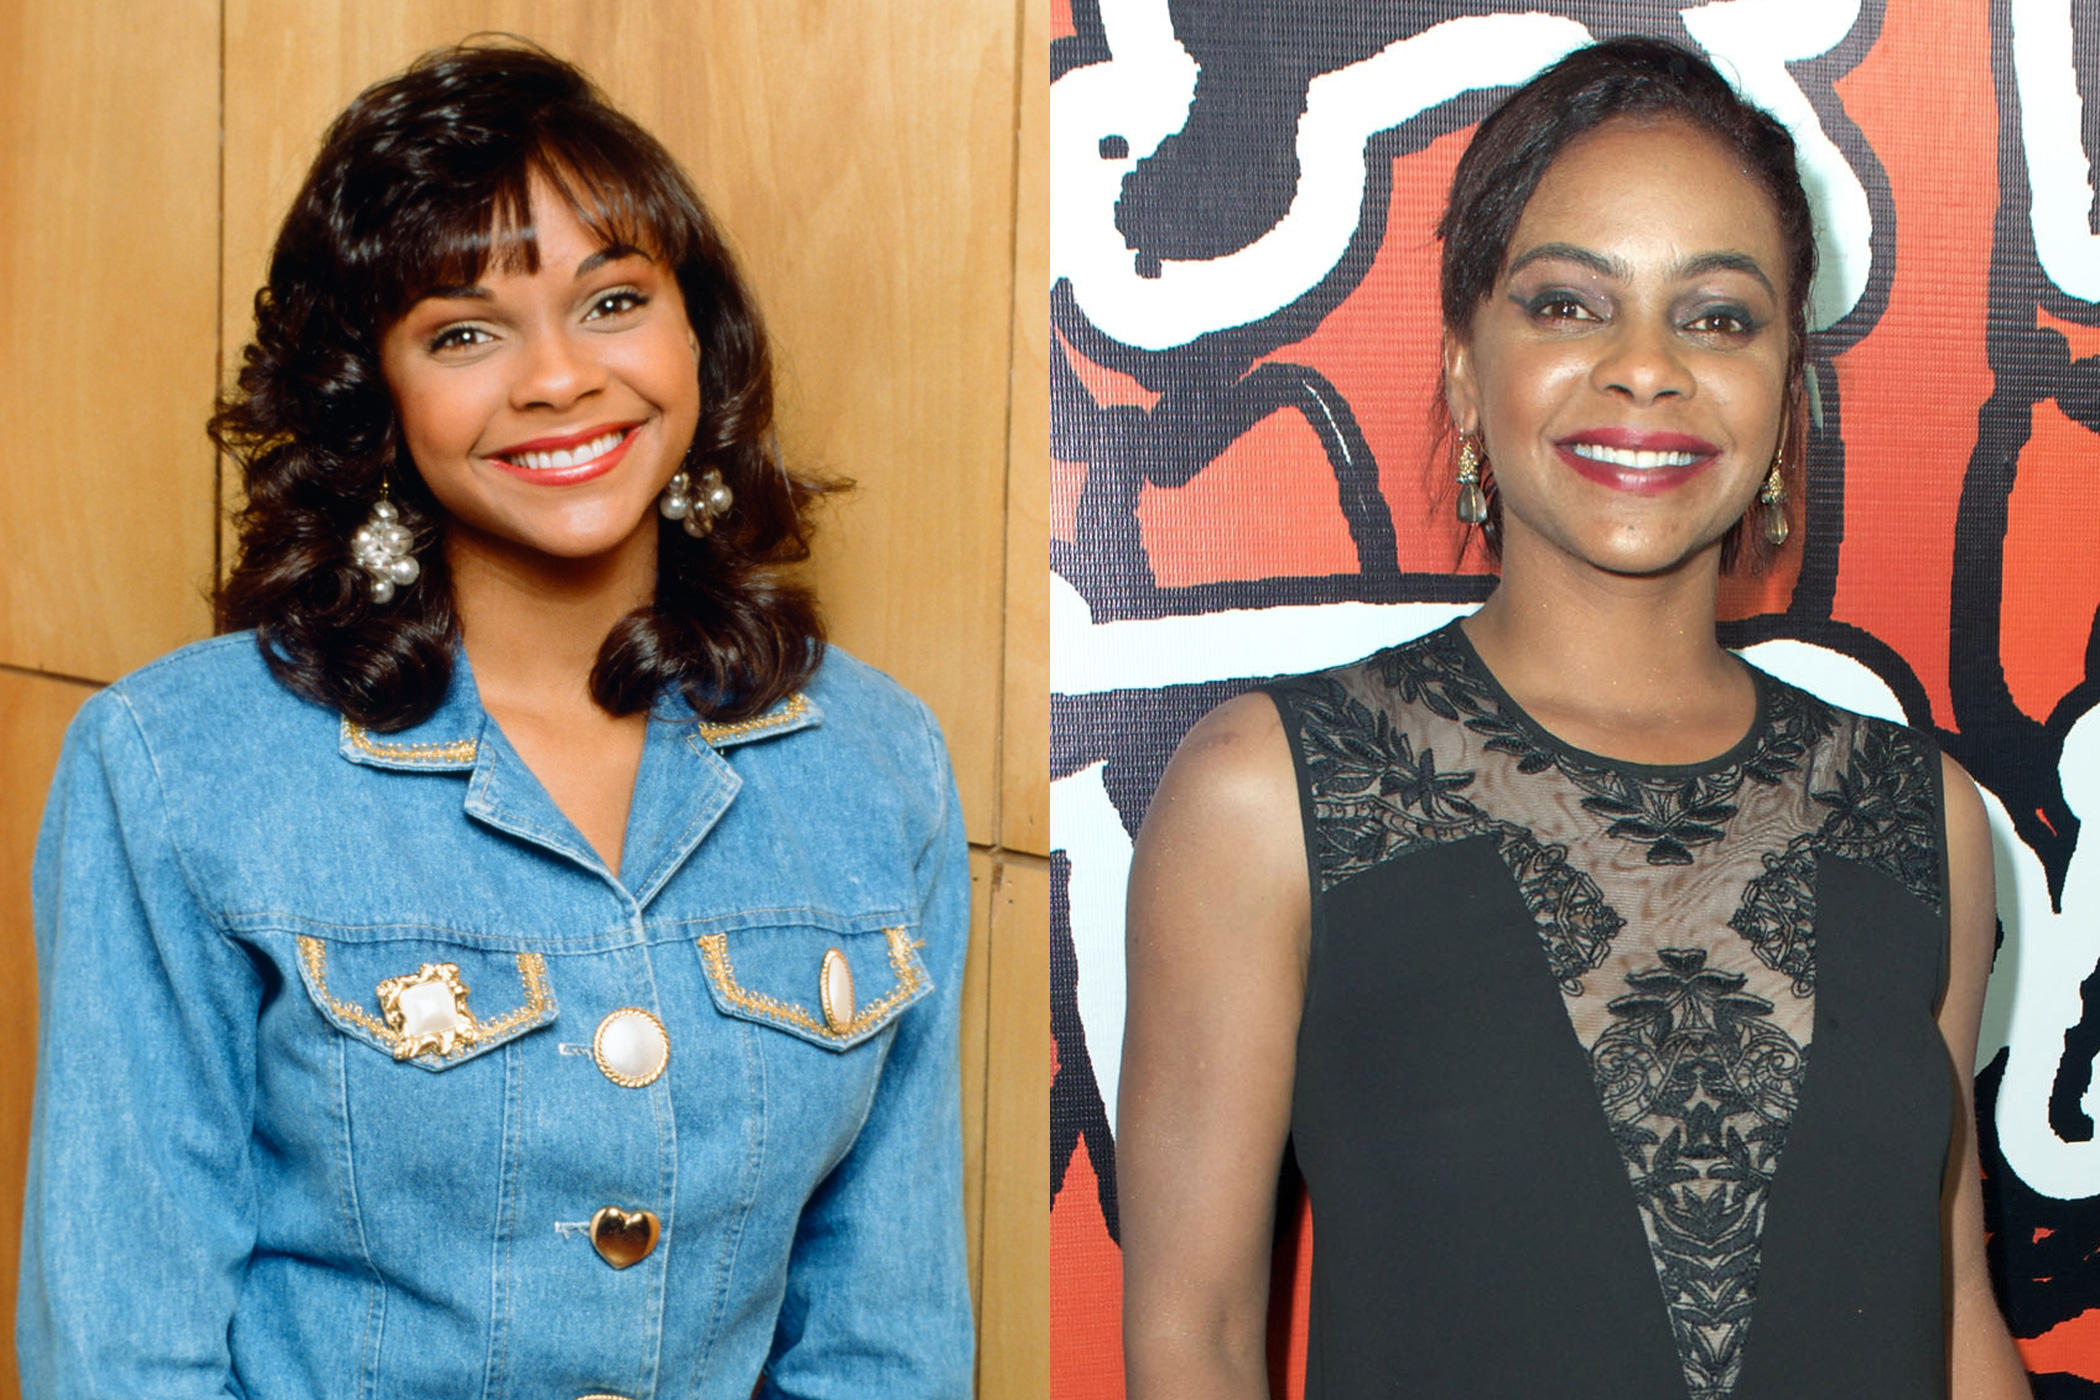 Lark Voorhies, Lisa Turtle: Although she has appeared in some TV shows and music videos, she's best known as Lisa. In 2001 Voorhies started her own production company.